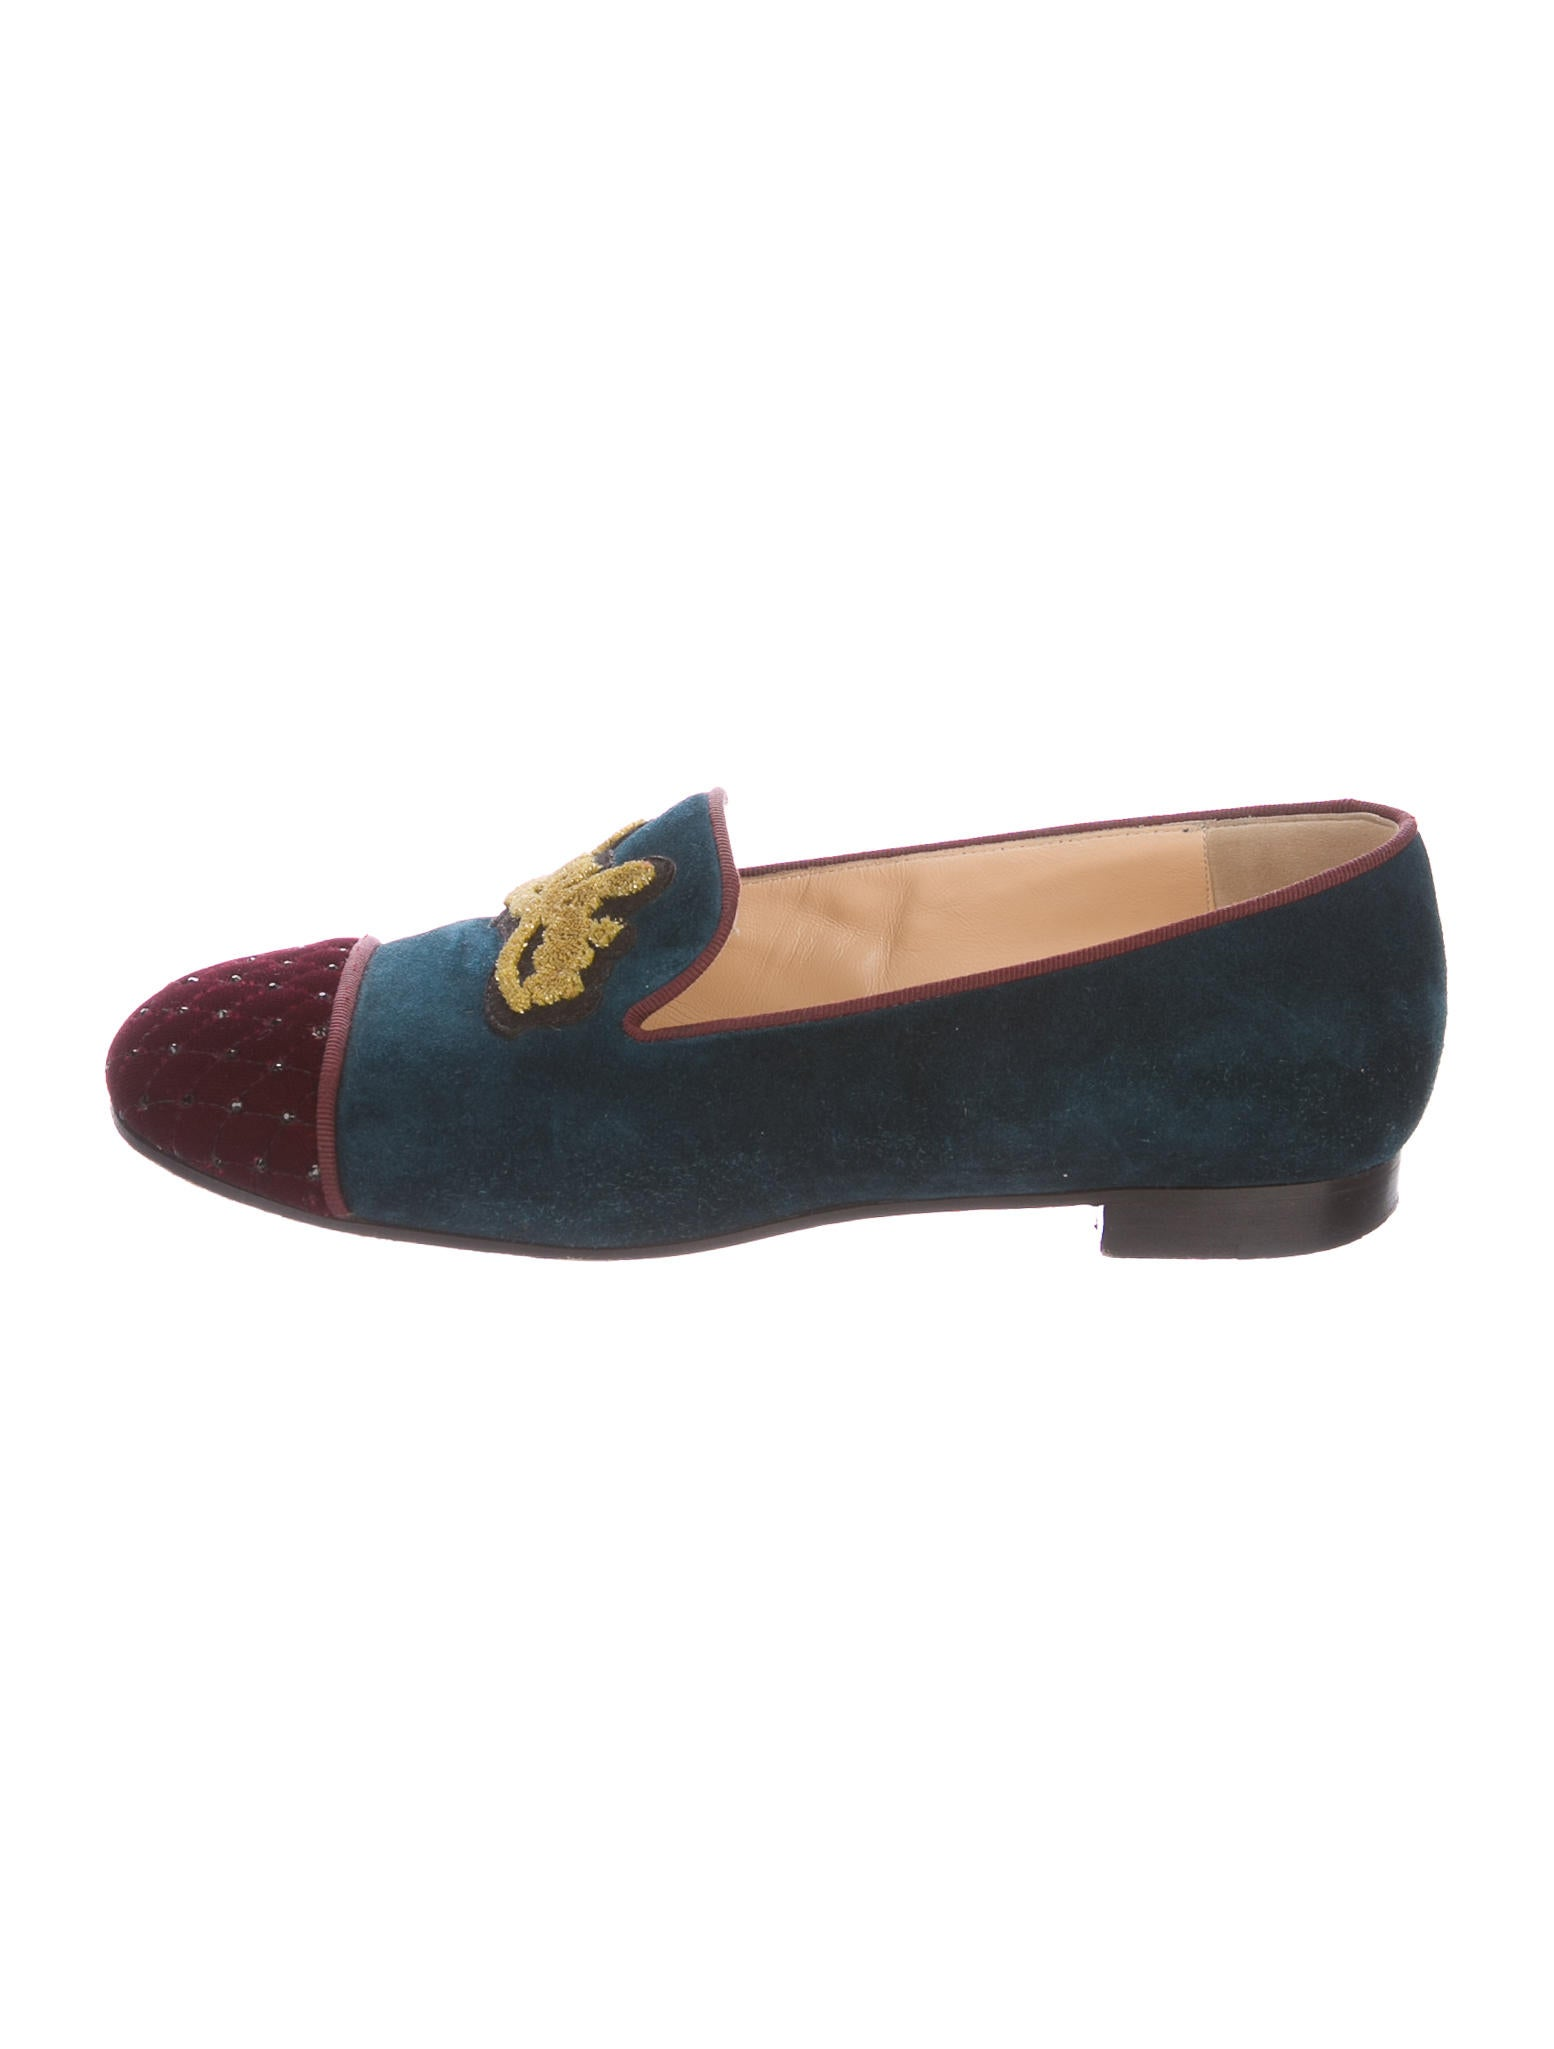 30861ab5603c Christian Louboutin My Love Cap-Toe Loafers - Shoes - CHT75639